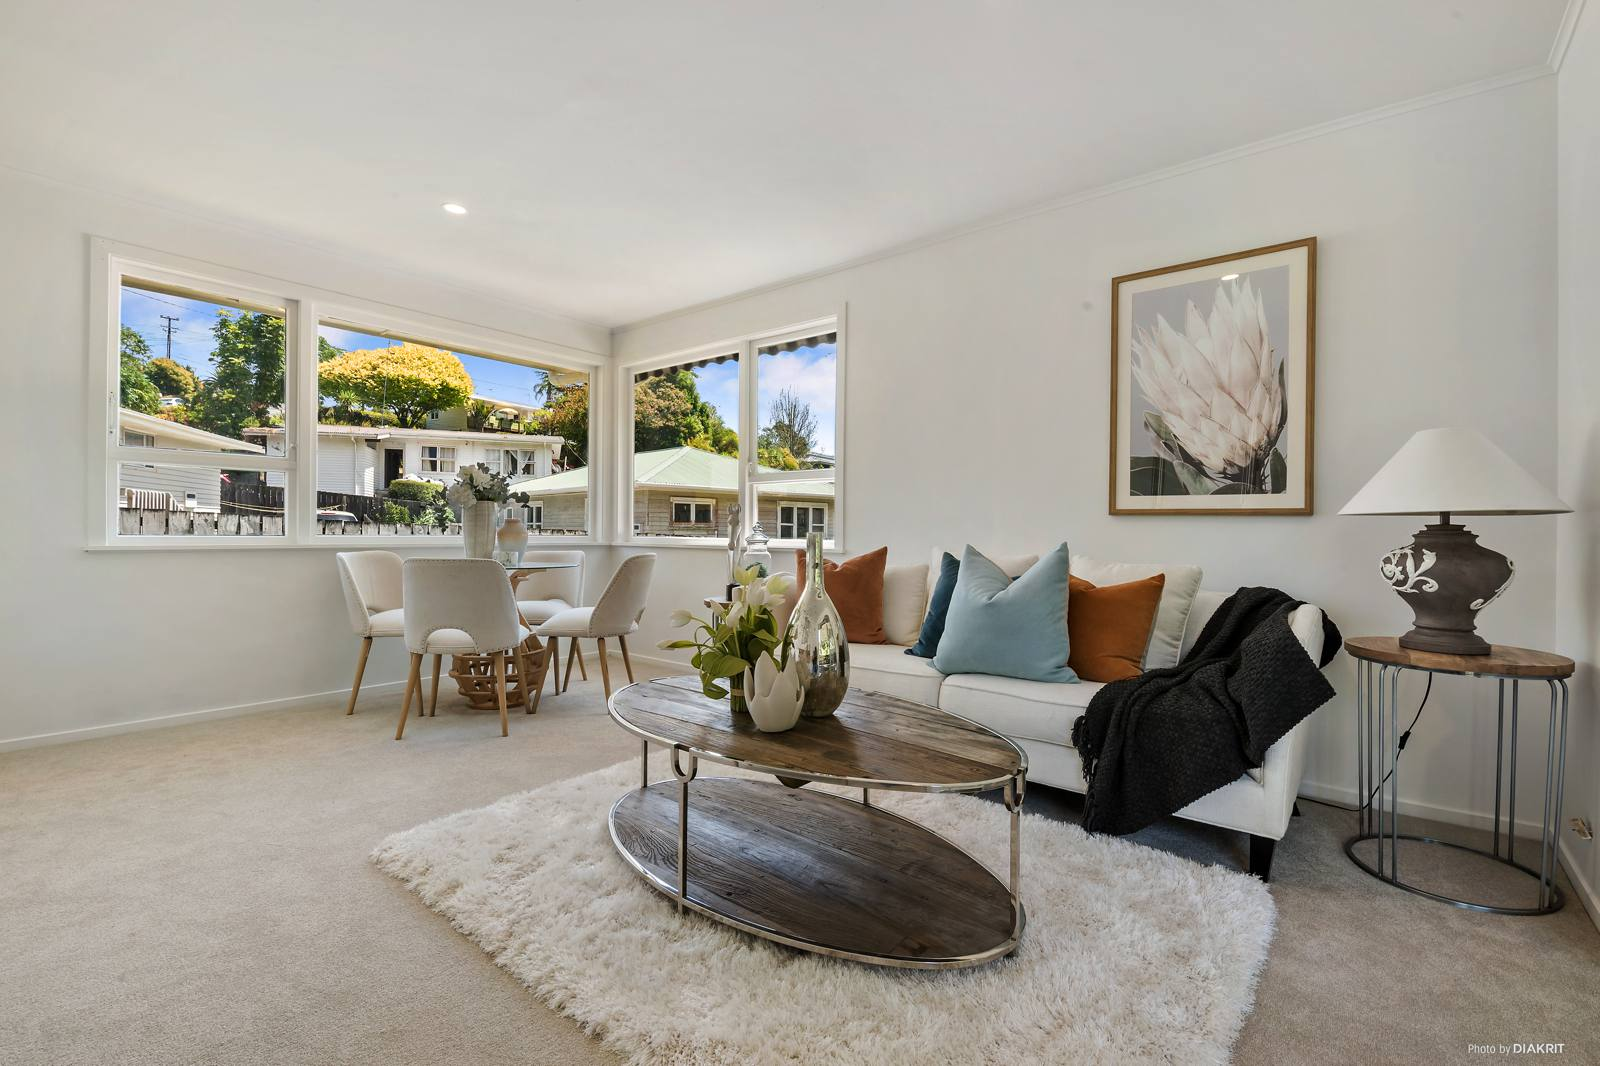 Freehold Sugartree Apartment, First Home or Easy Investment